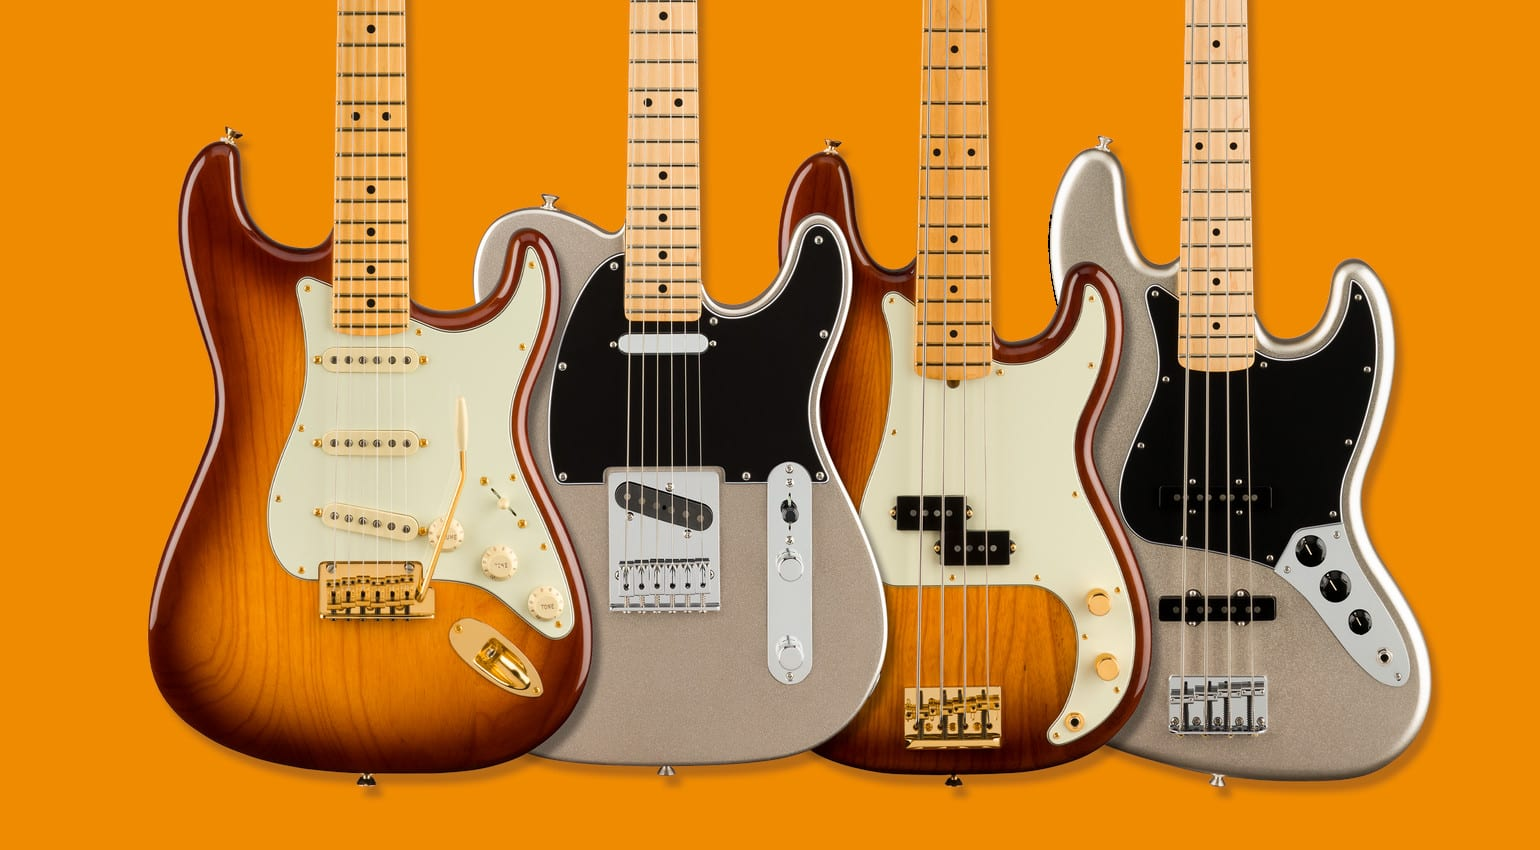 Fender Celebrates 75 Years with a Limited Range of their Iconic Shapes